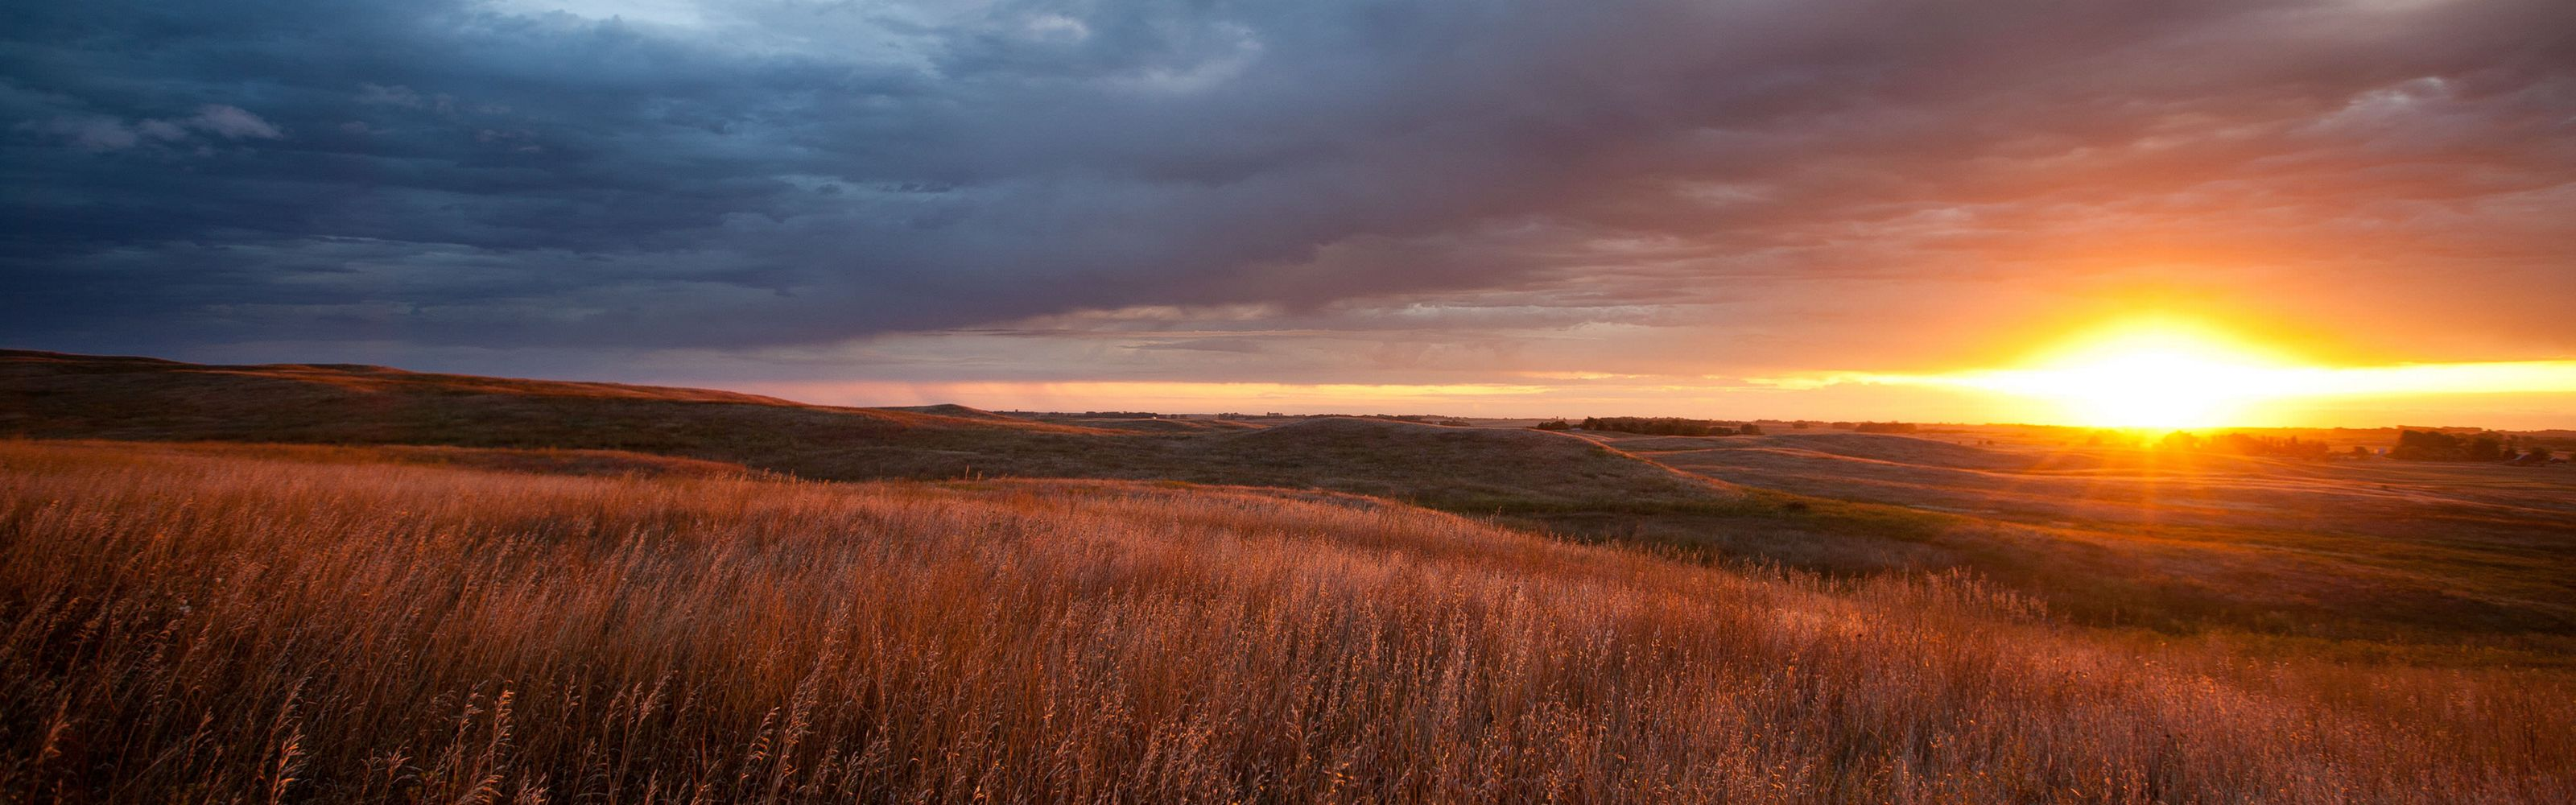 is a privately-owned and managed property in Deuel County within the Prairie Coteau grasslands.